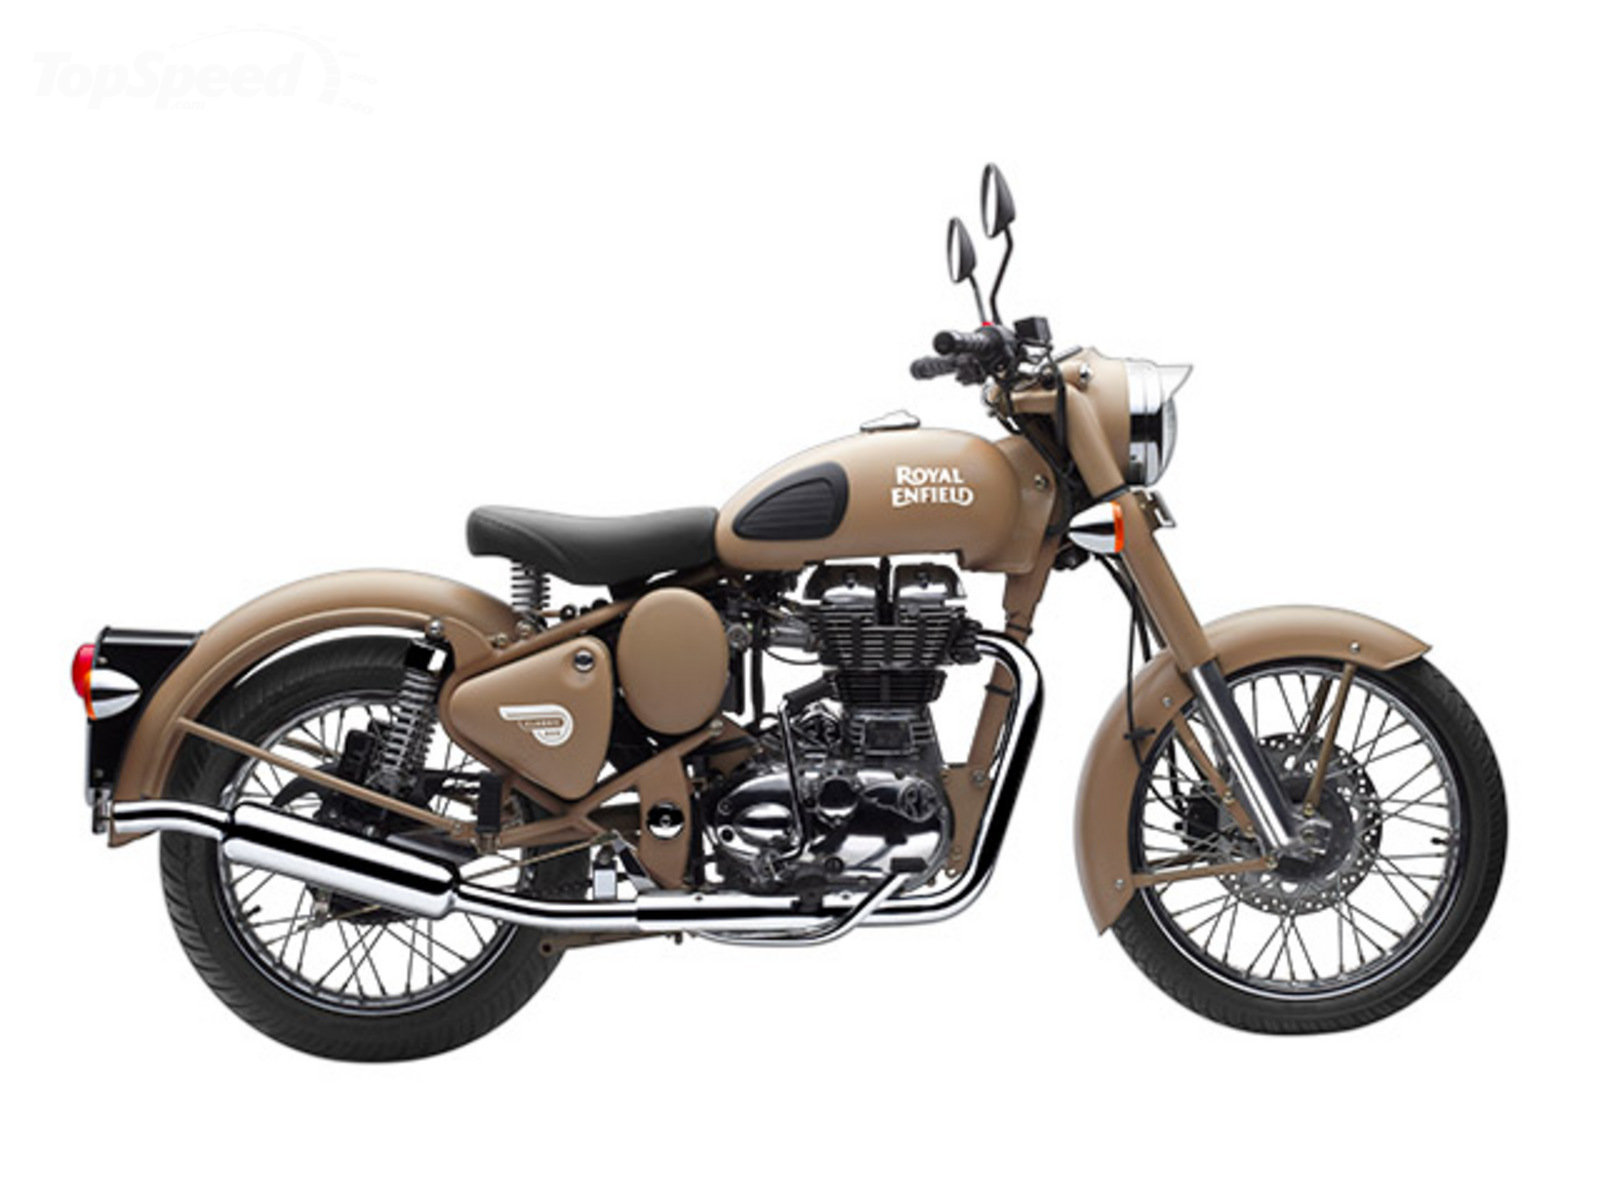 2014 royal enfield classic desert storm review top speed. Black Bedroom Furniture Sets. Home Design Ideas